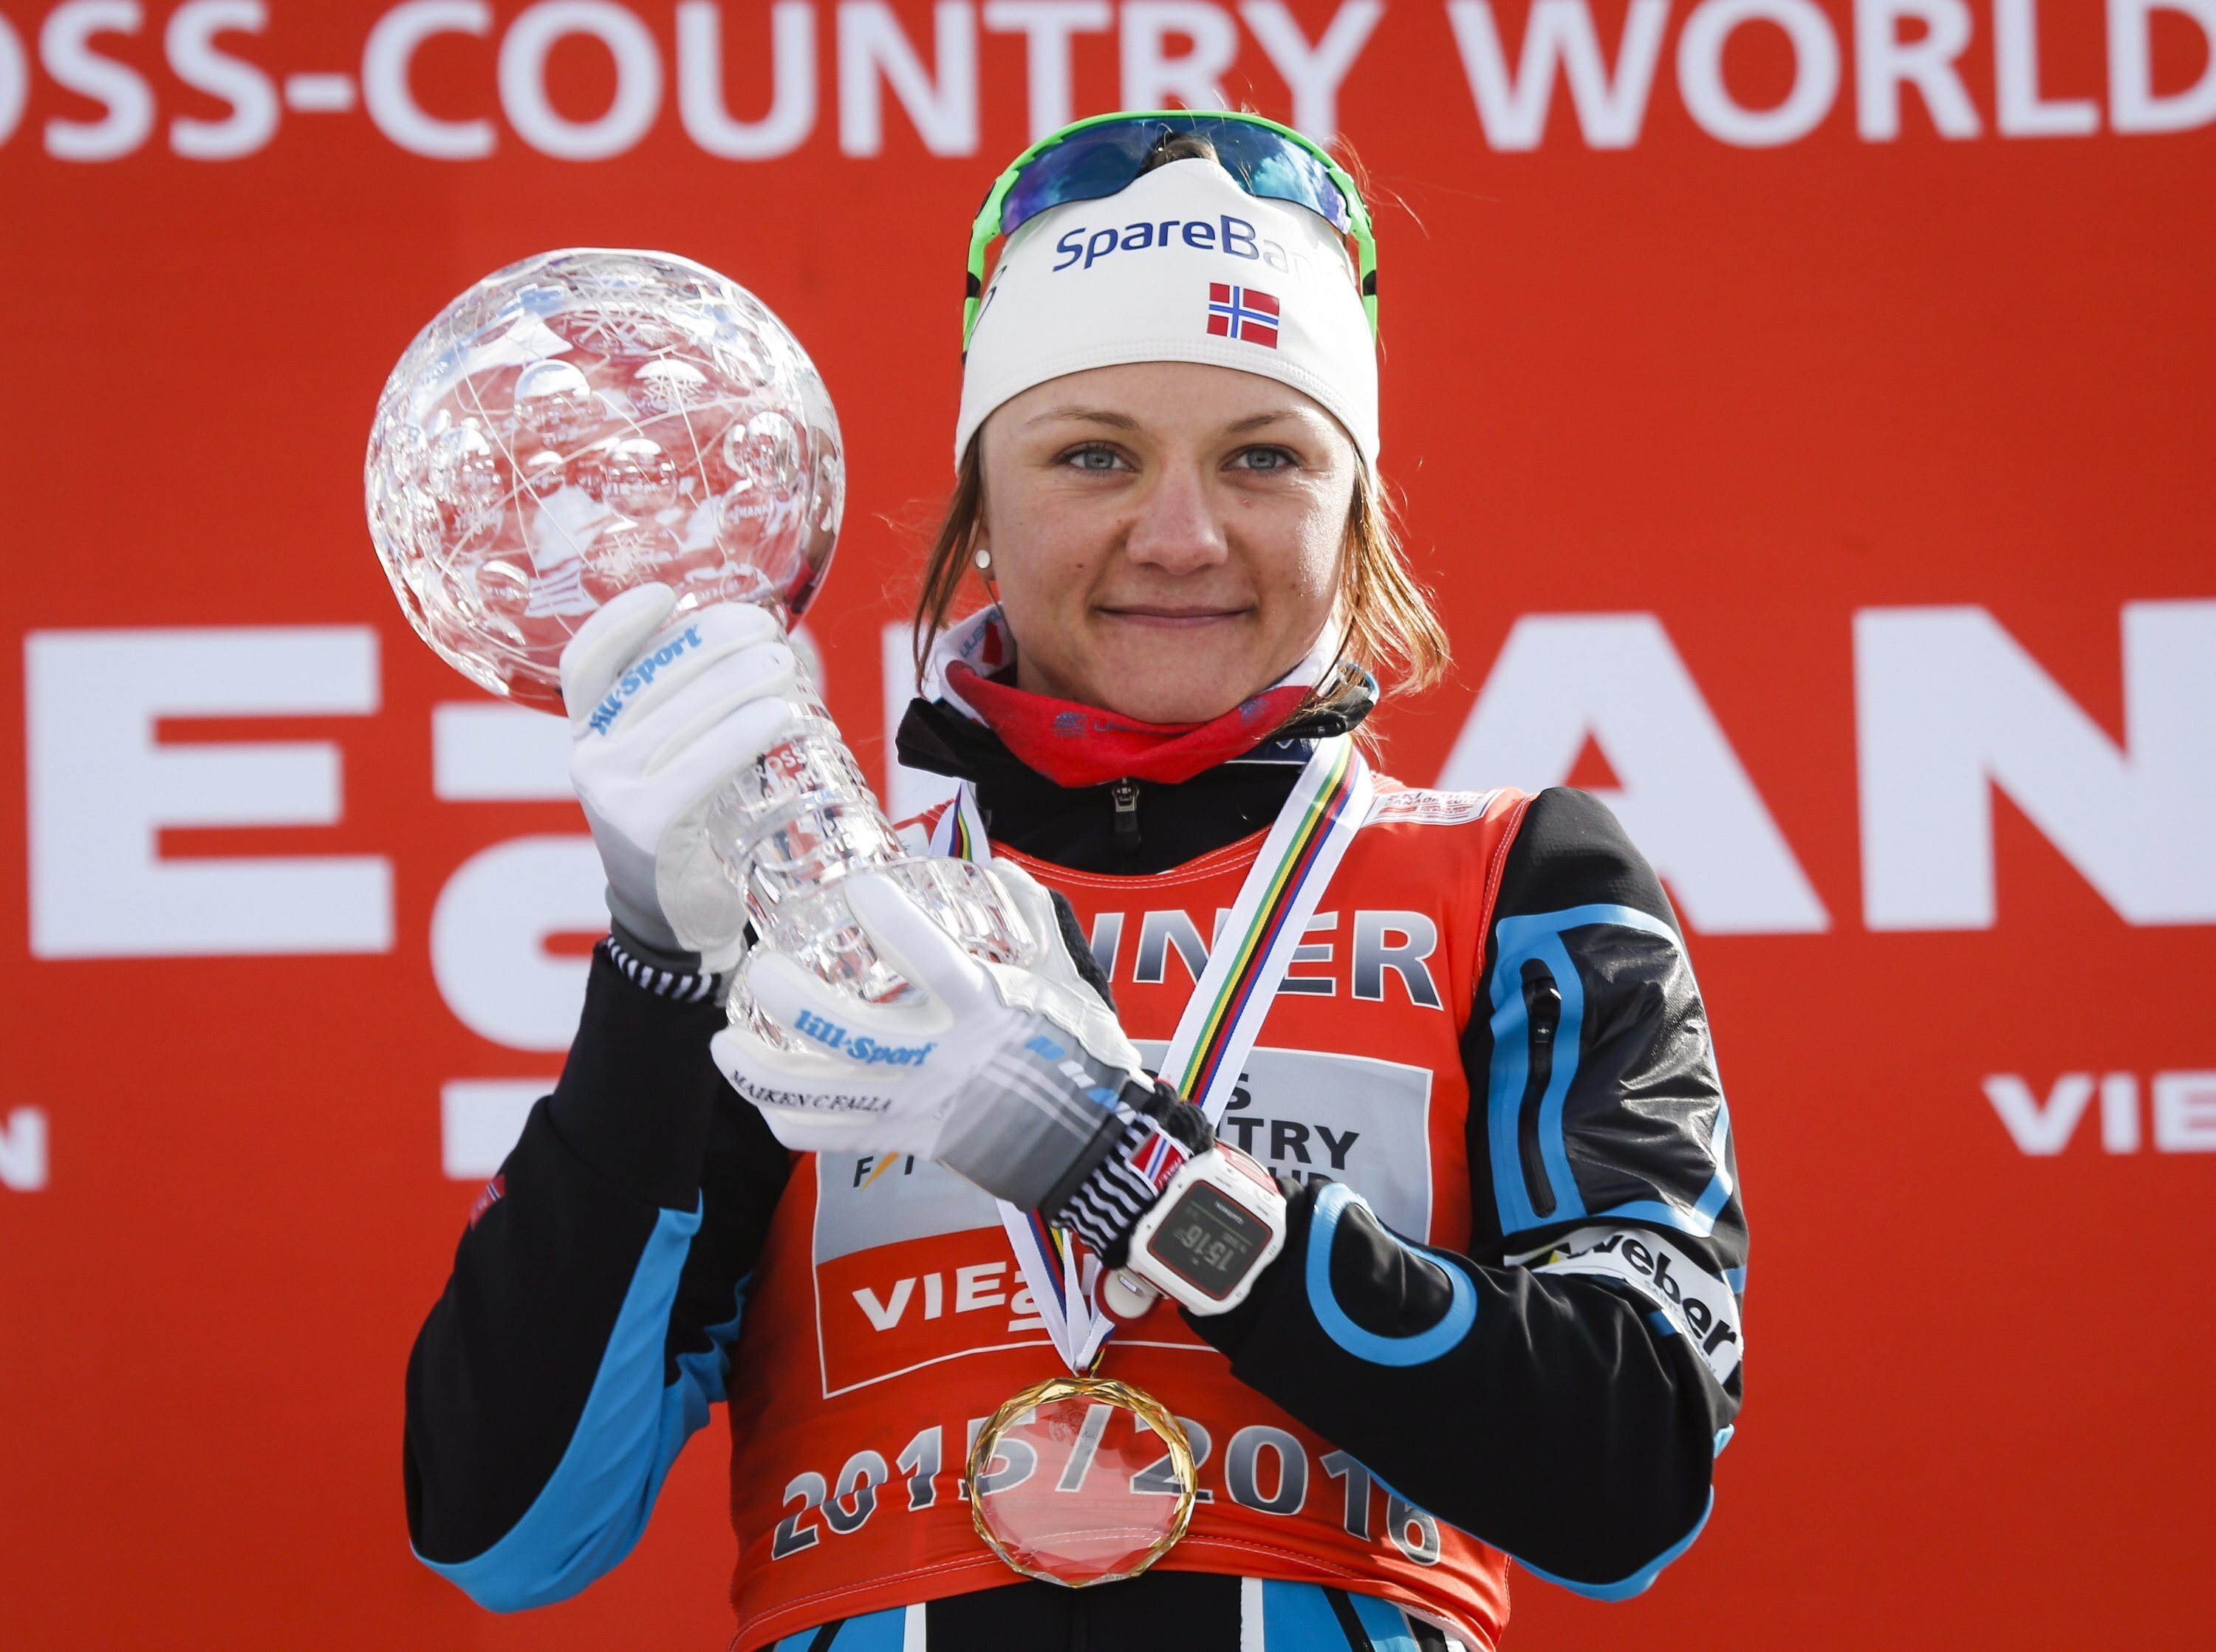 canada_wcup_cross_country_skiing-3408352_r7017.jpeg